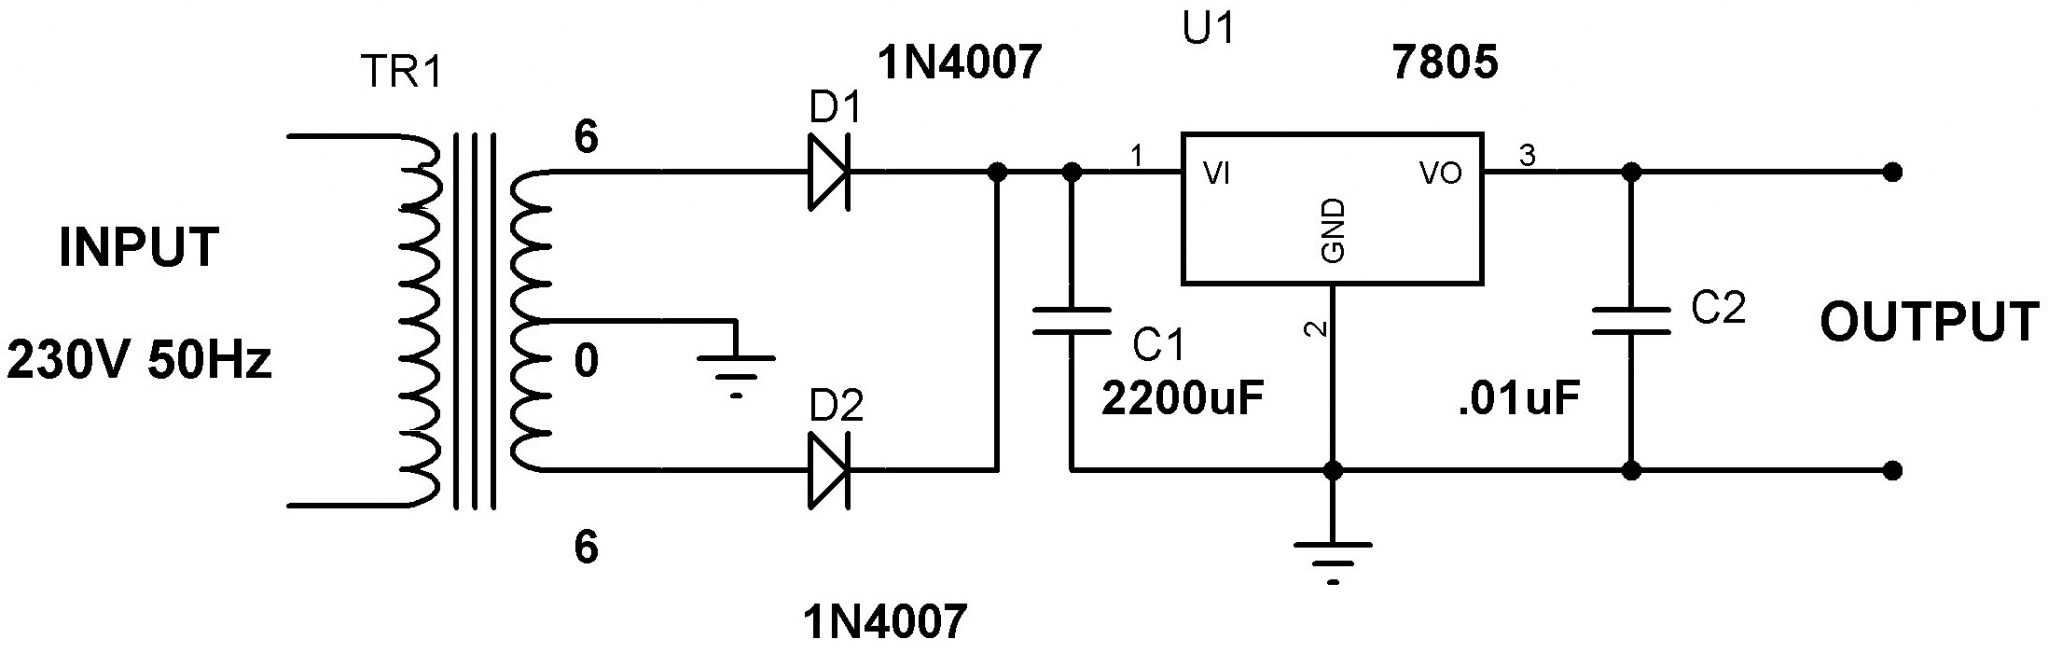 5v power supply using 7805 voltage regulator with design rh electrosome com 7805 schematic diagram 7805 wiring diagram